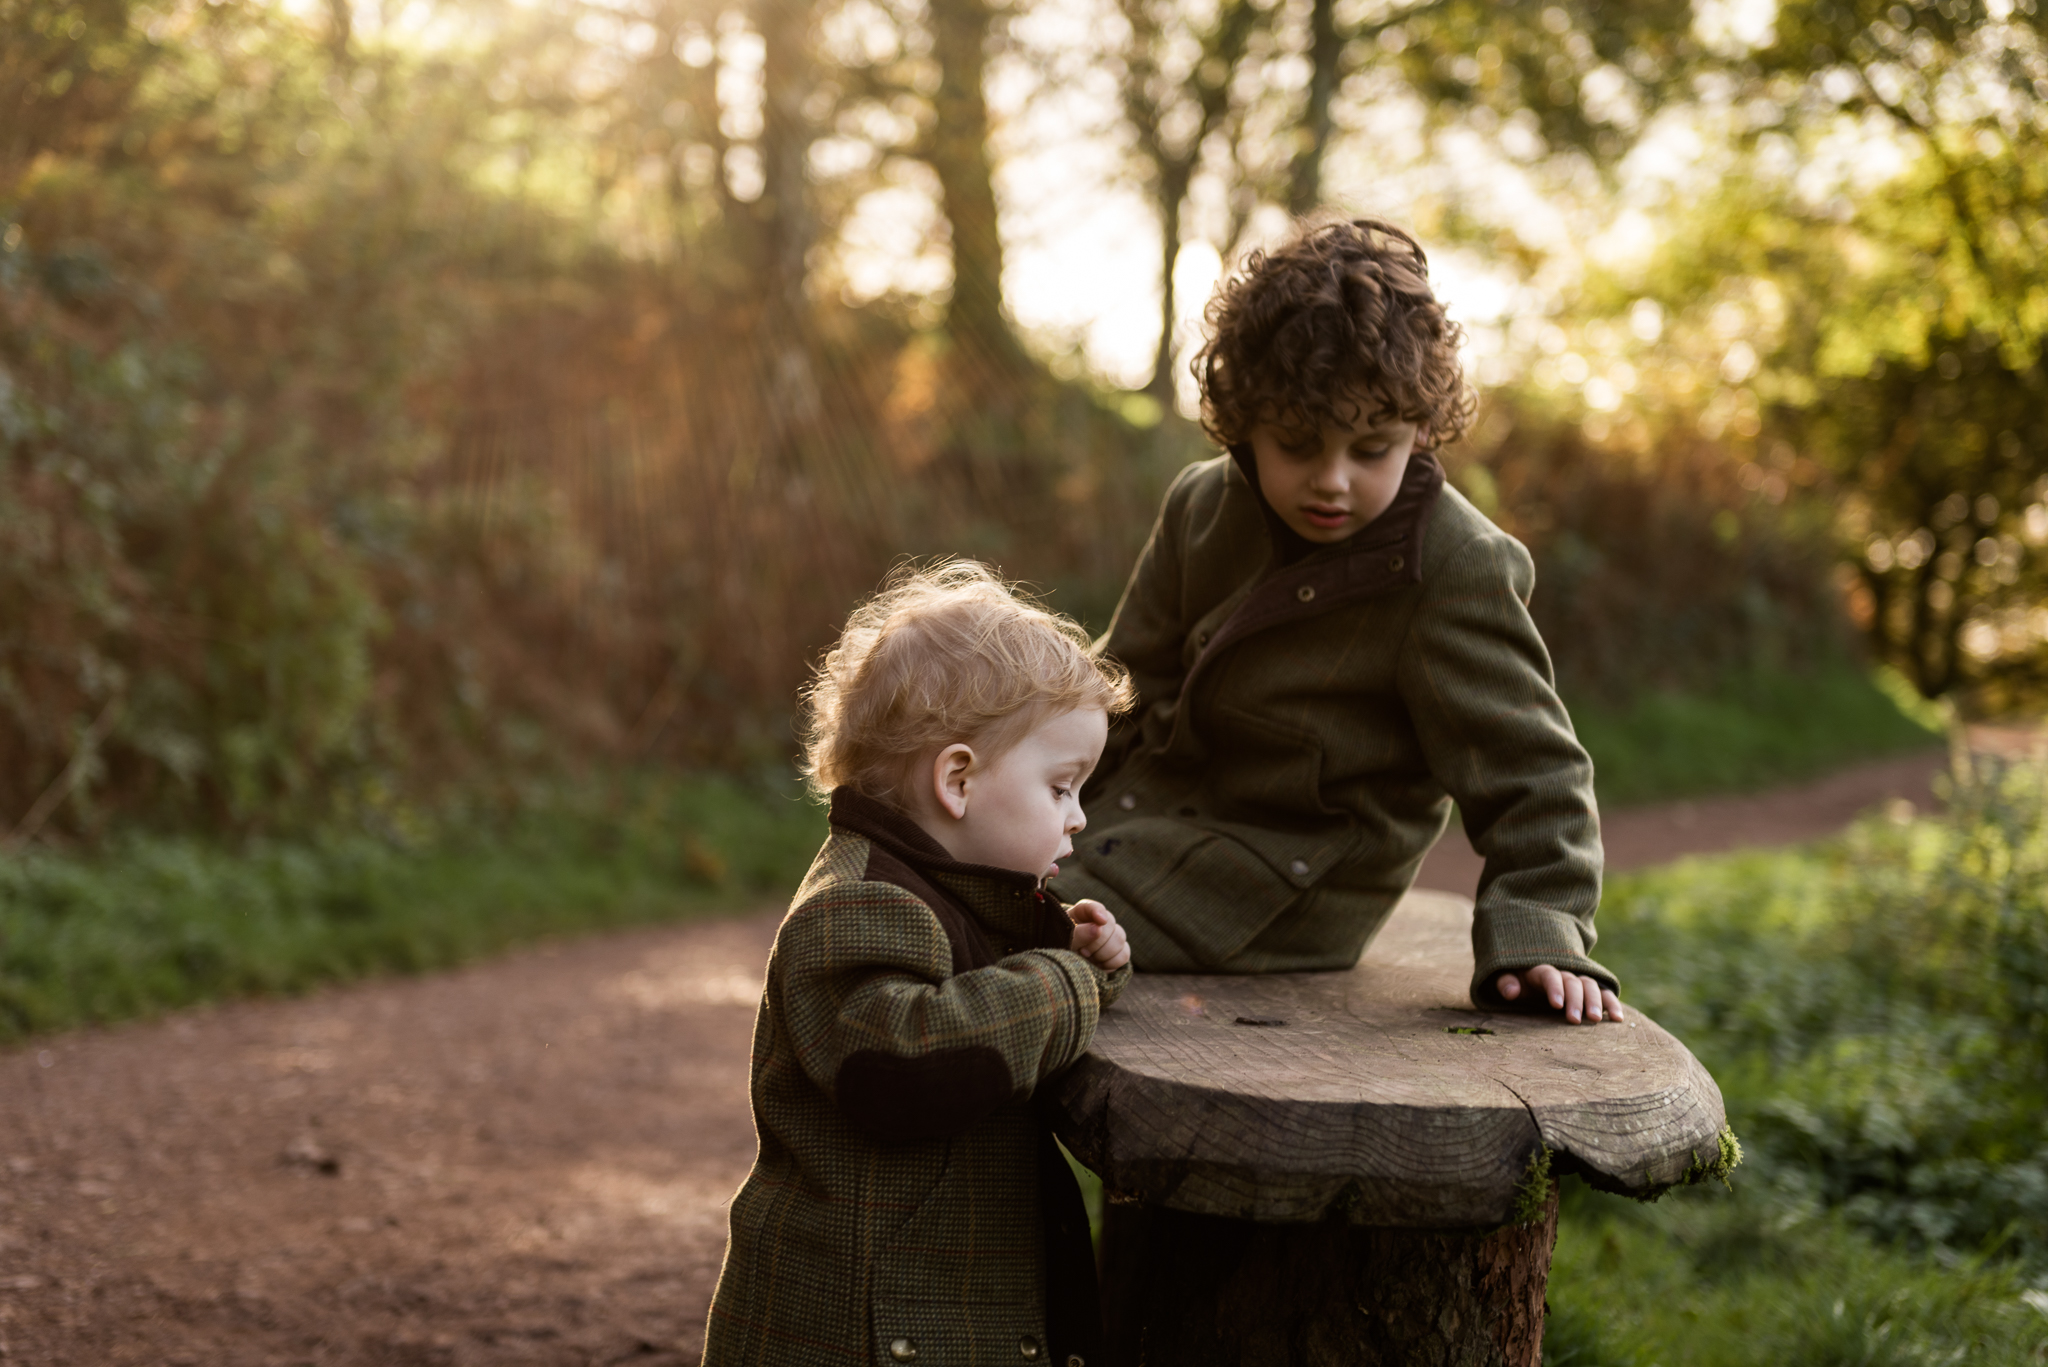 Autumn Documentary Lifestyle Family Photography at Clent Hills, Worcestershire Country Park countryside outdoors nature - Jenny Harper-12.jpg